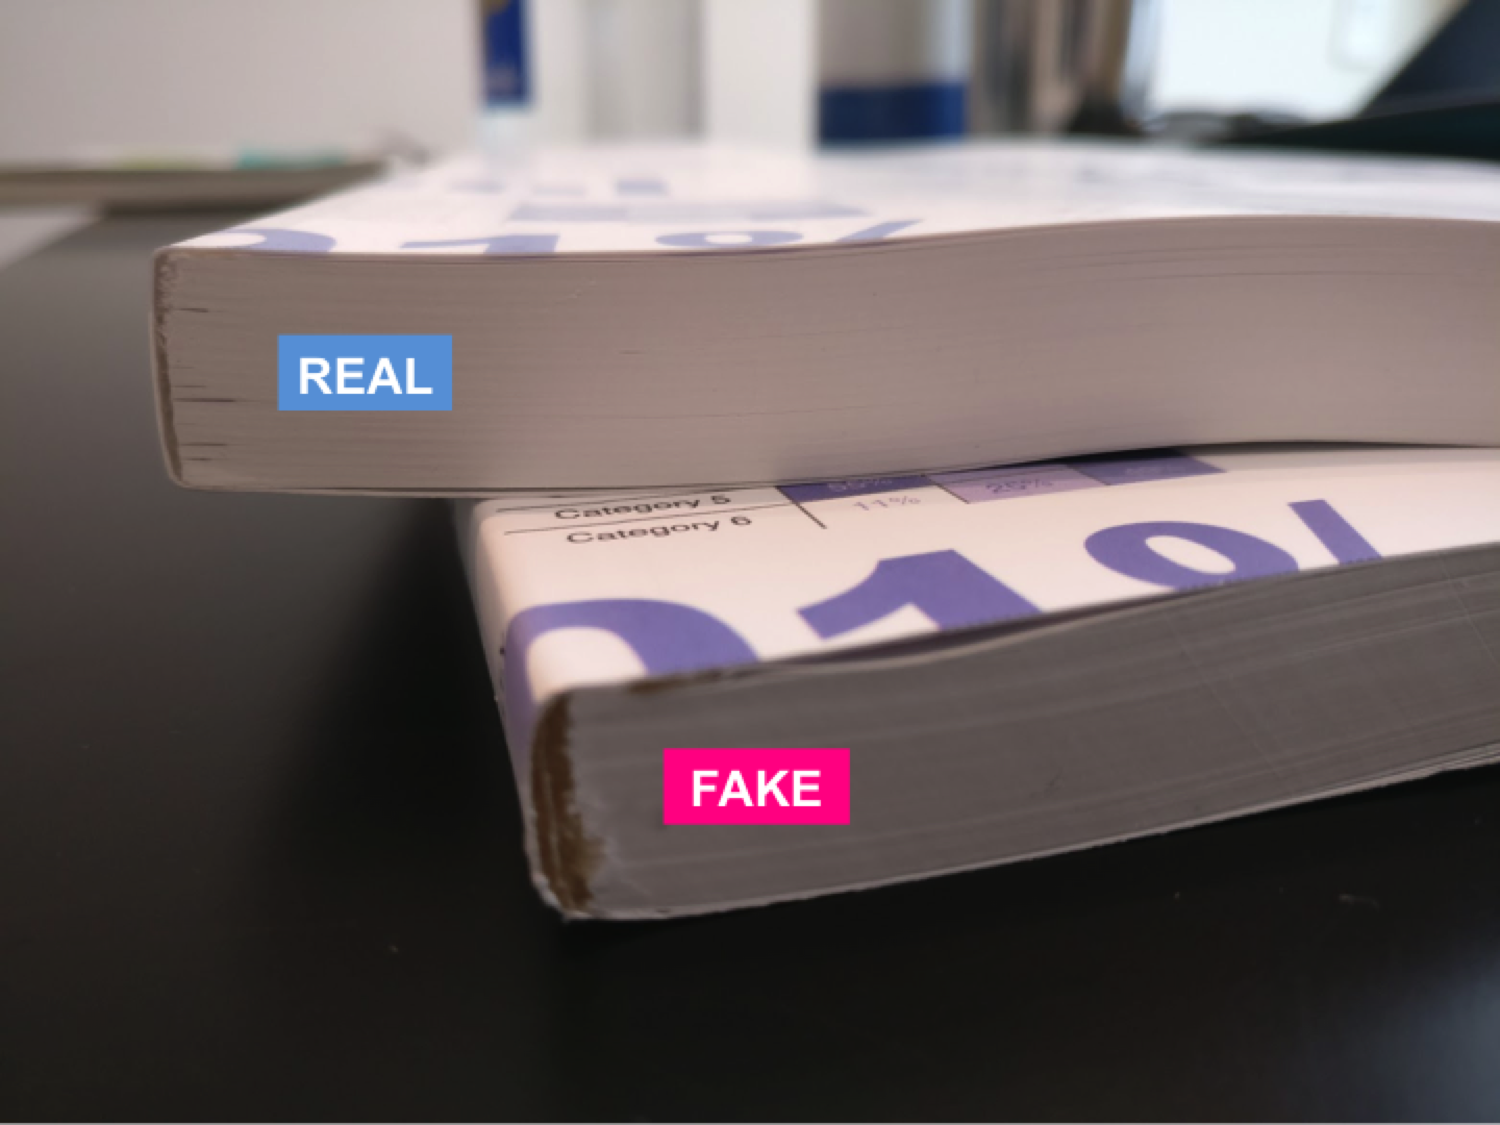 BINDING : The fake has sloppy binding with visible glue and is also thinner due to lower paper quality compared to the real book.